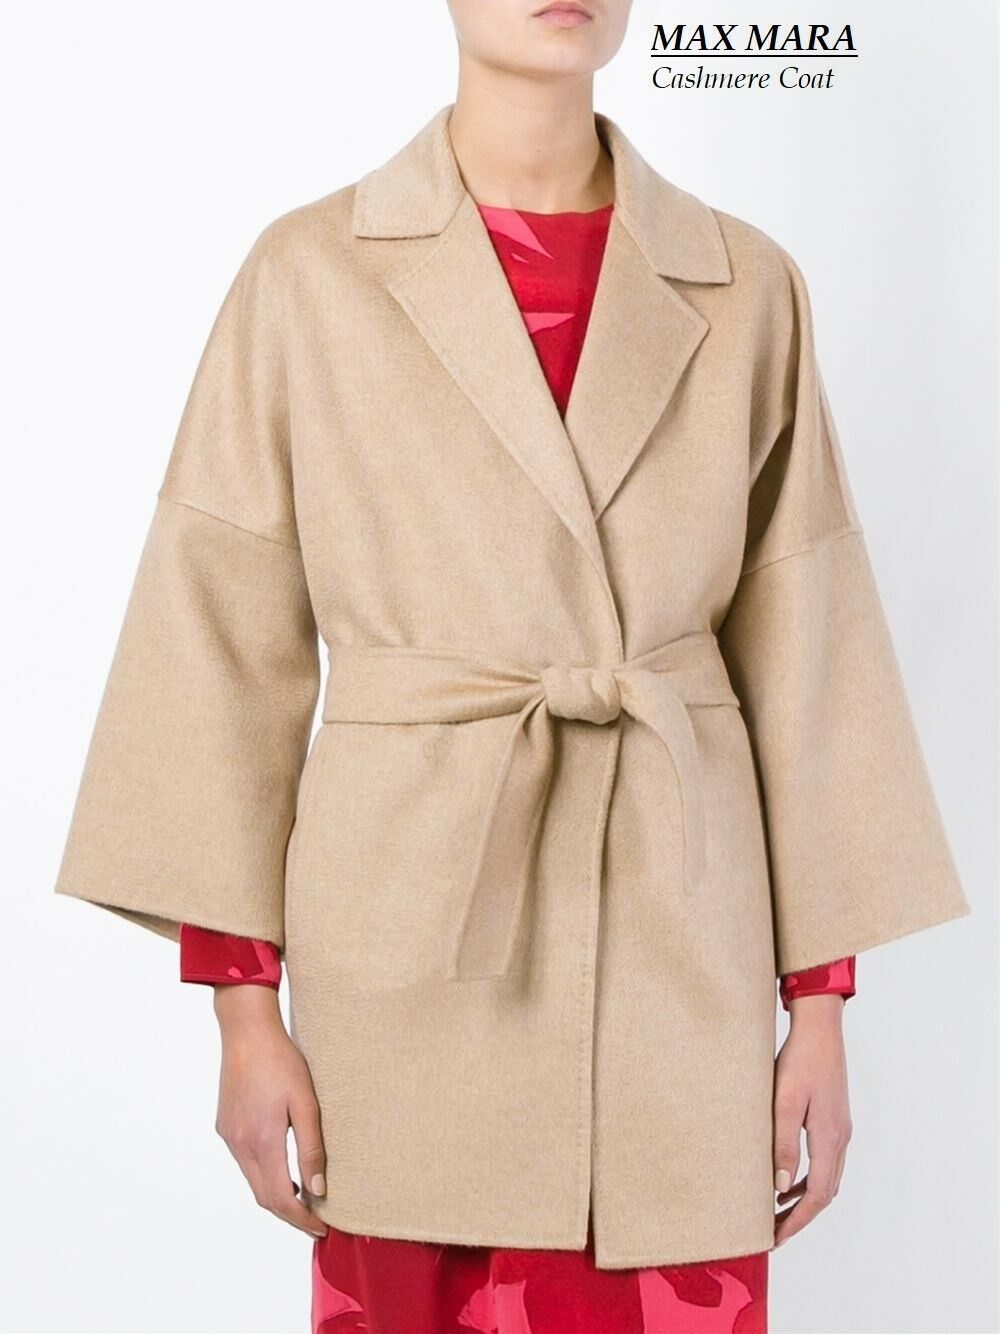 New MAX MARA CASHMERE Coat mod.Ravello size 12 USA_ 14 GB_ 42 D_ 46 I_44 F